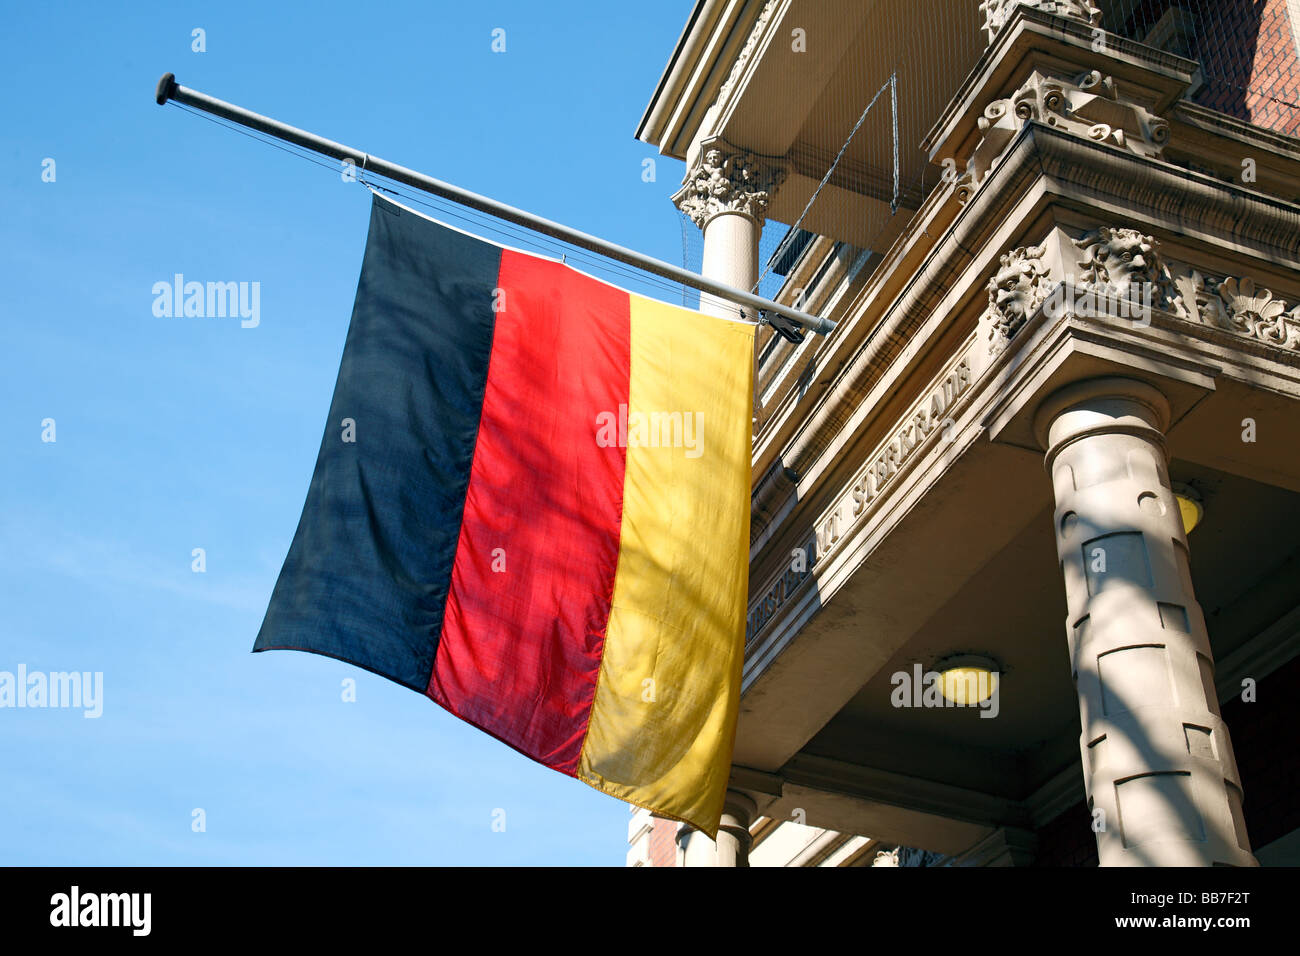 symbolism, emotions, mourning, remembrance, flag at half-mast, German flag at the Sterkrade town hall, hoisting - Stock Image